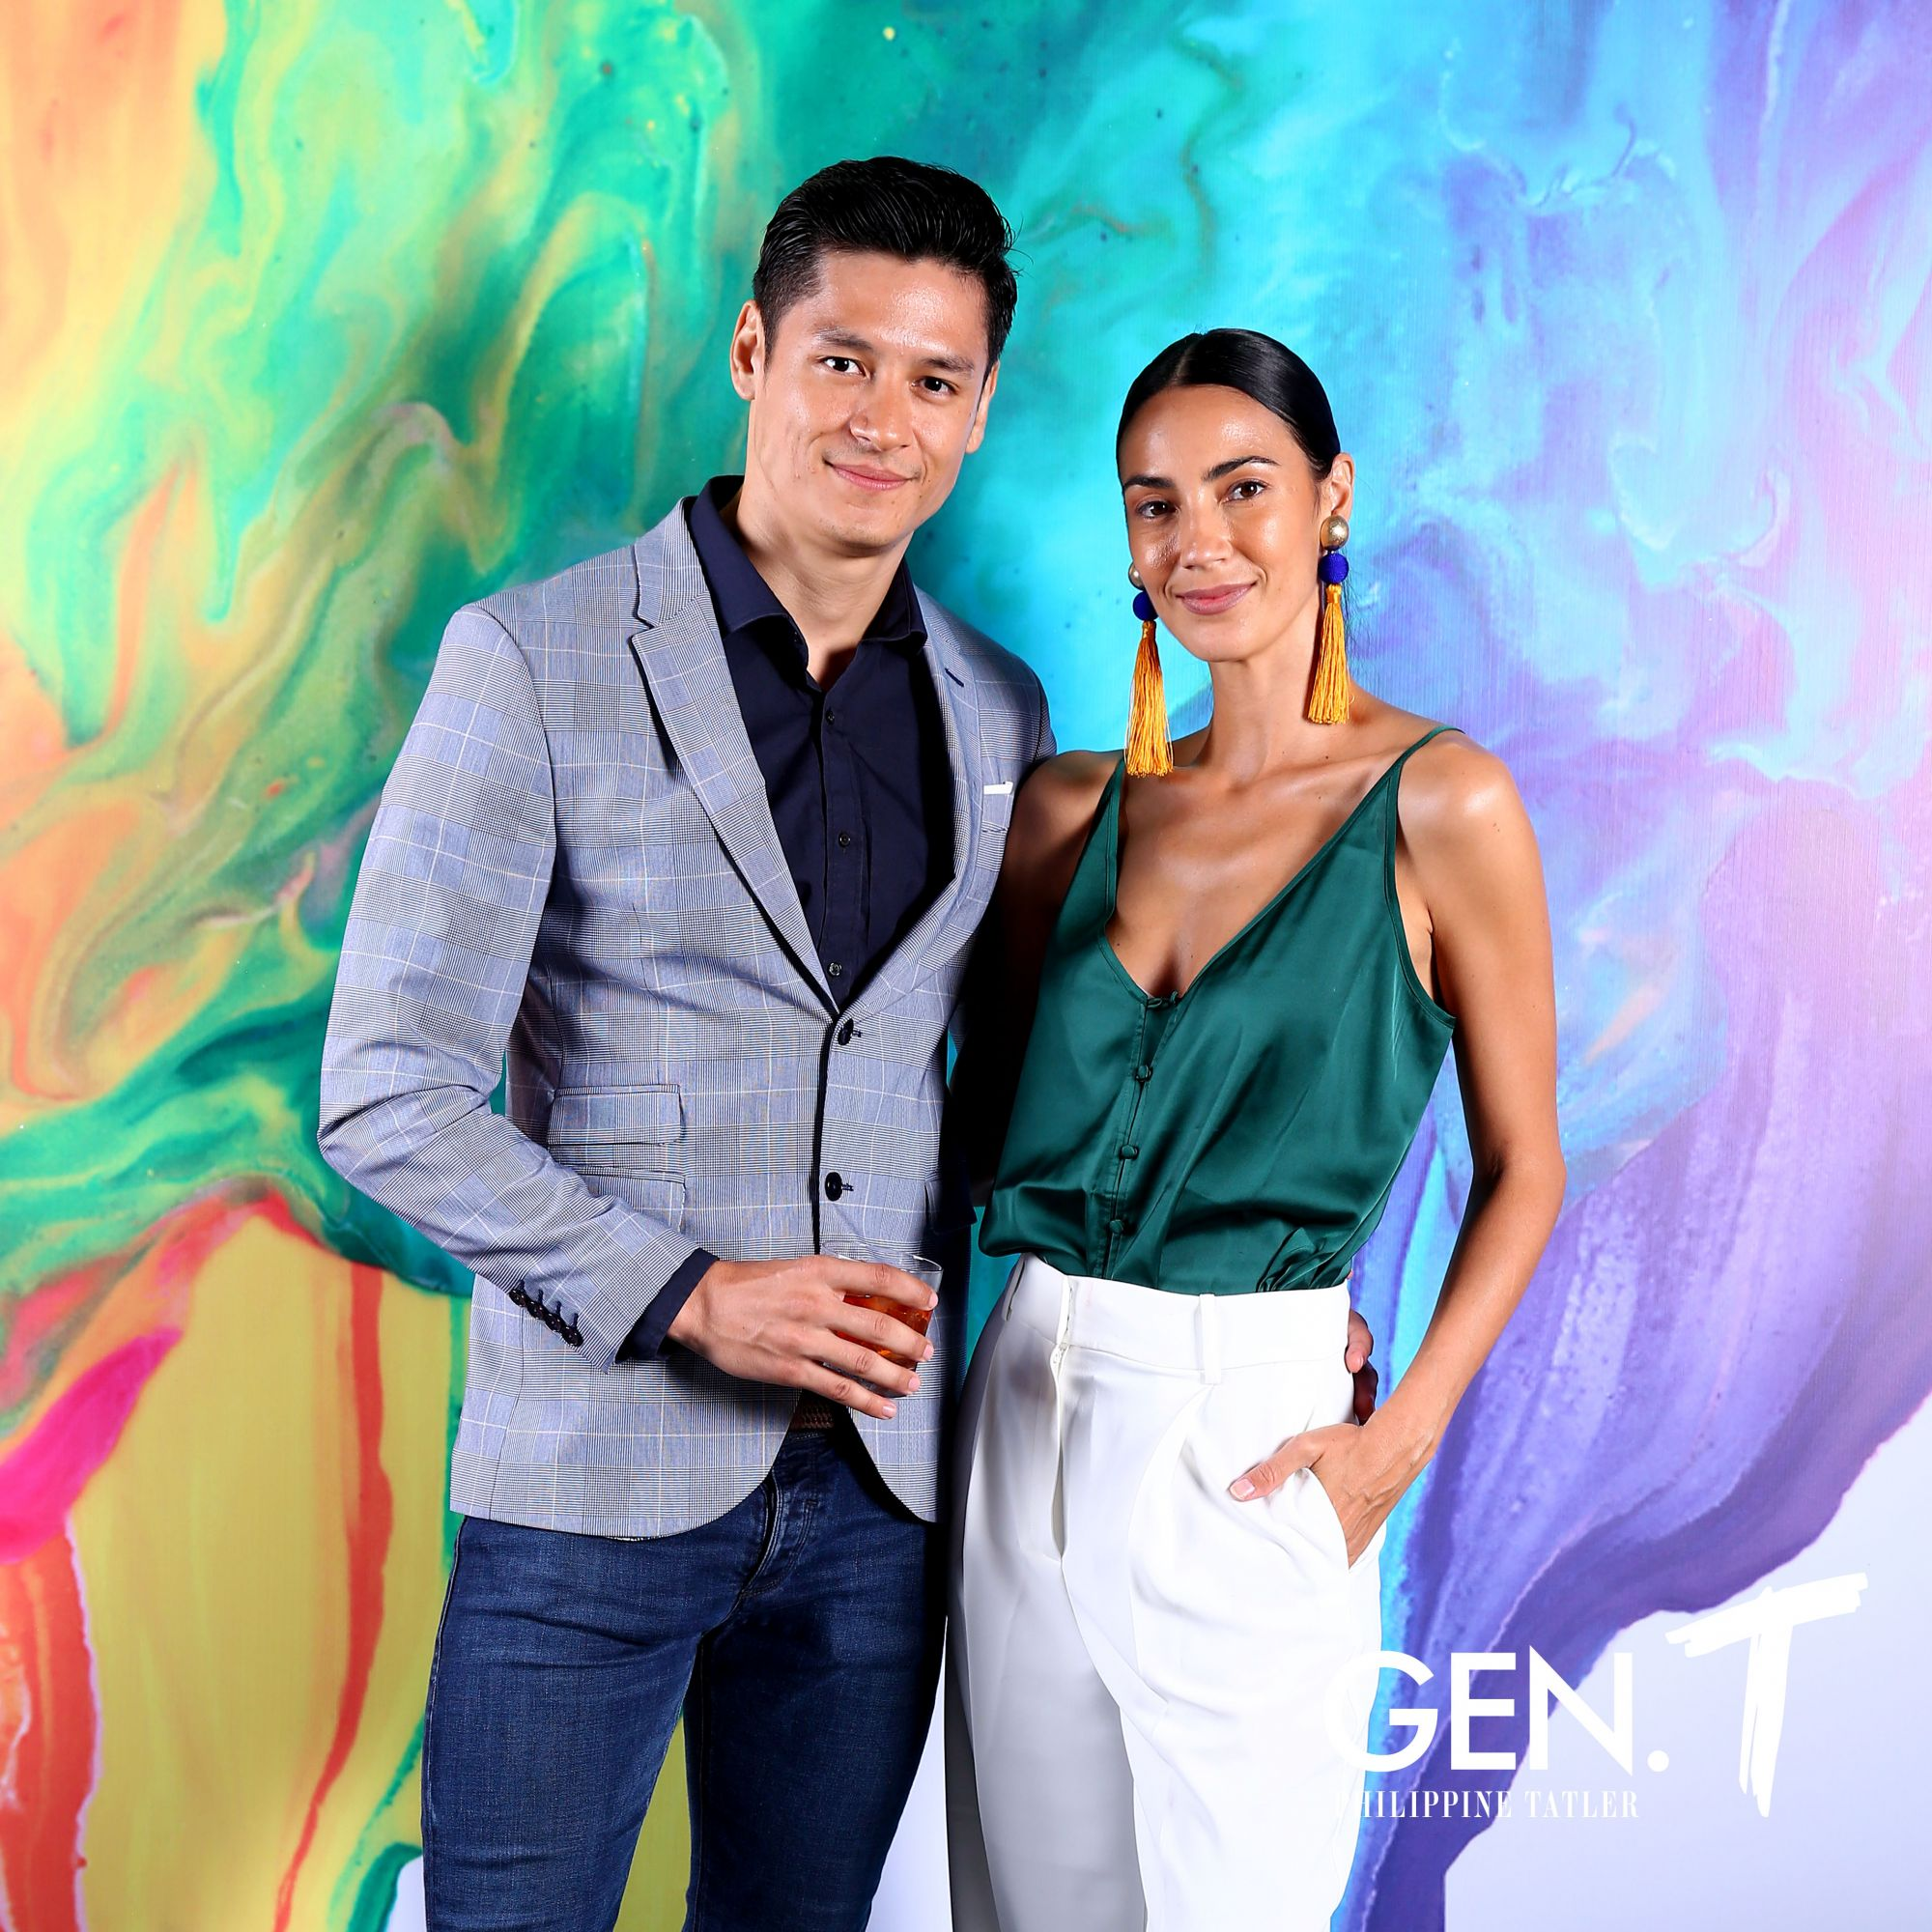 Hideo Muraoka and Fatima Rabago